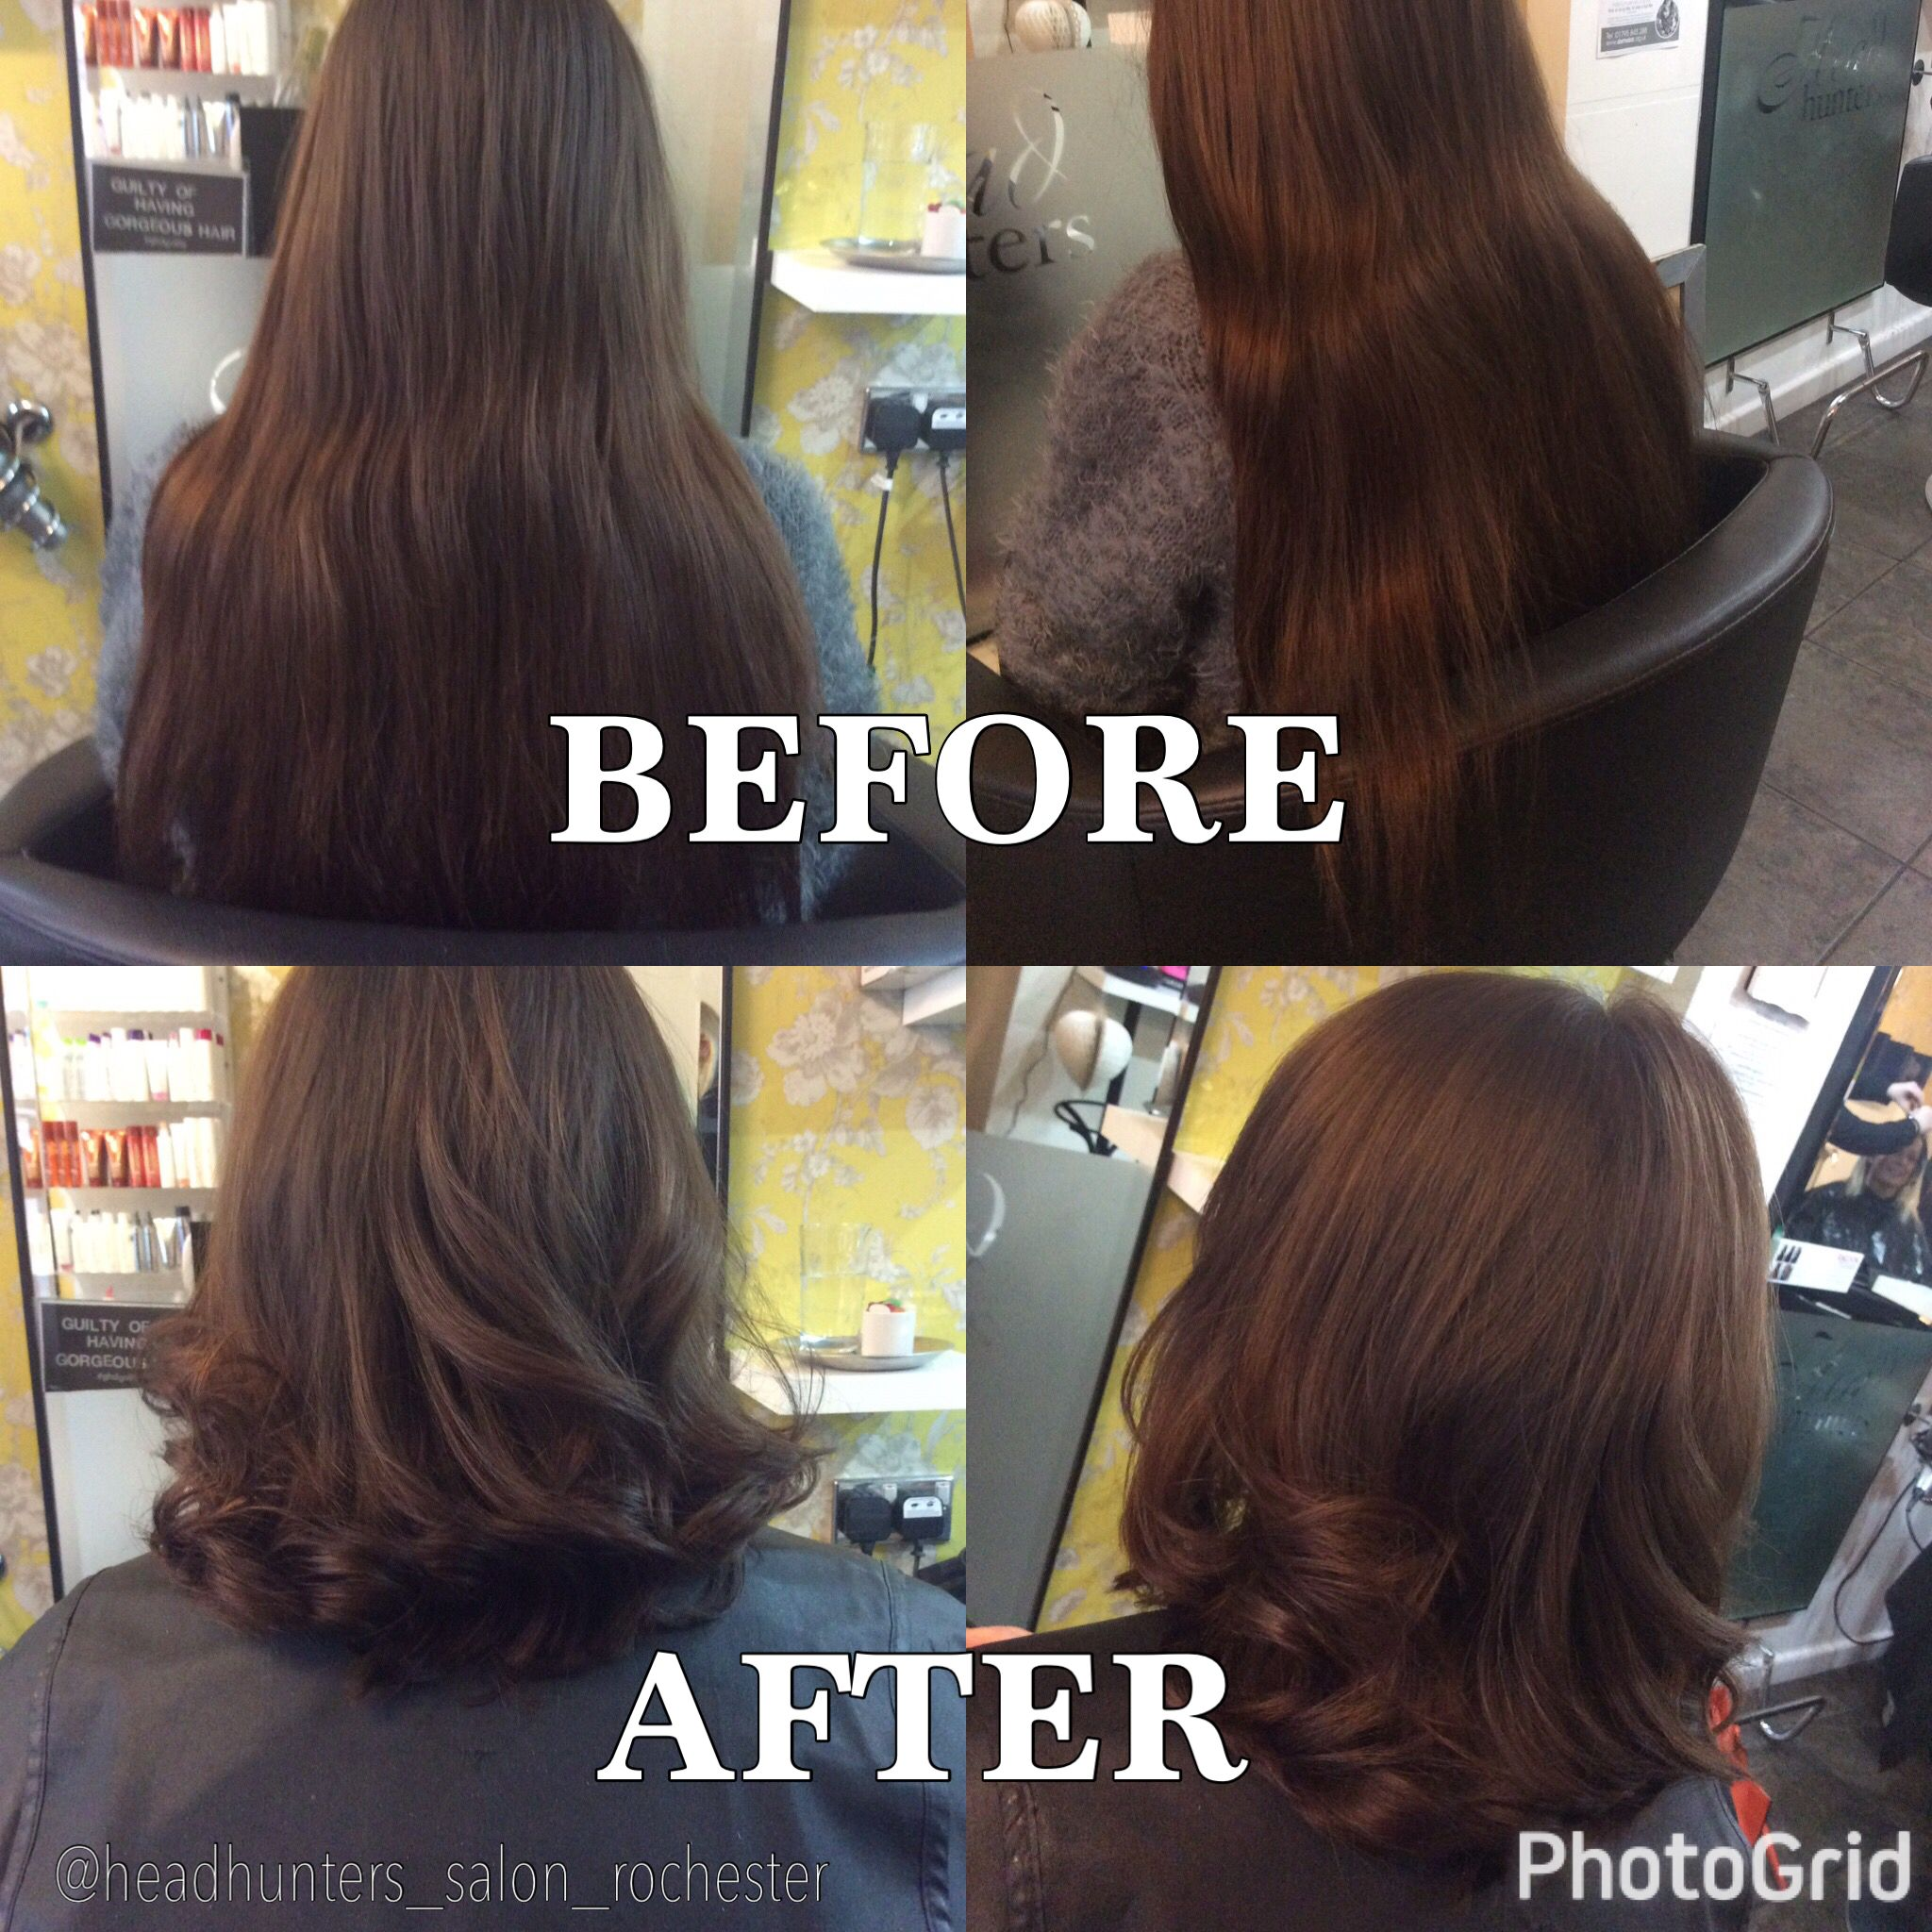 Restyle from long to short hair